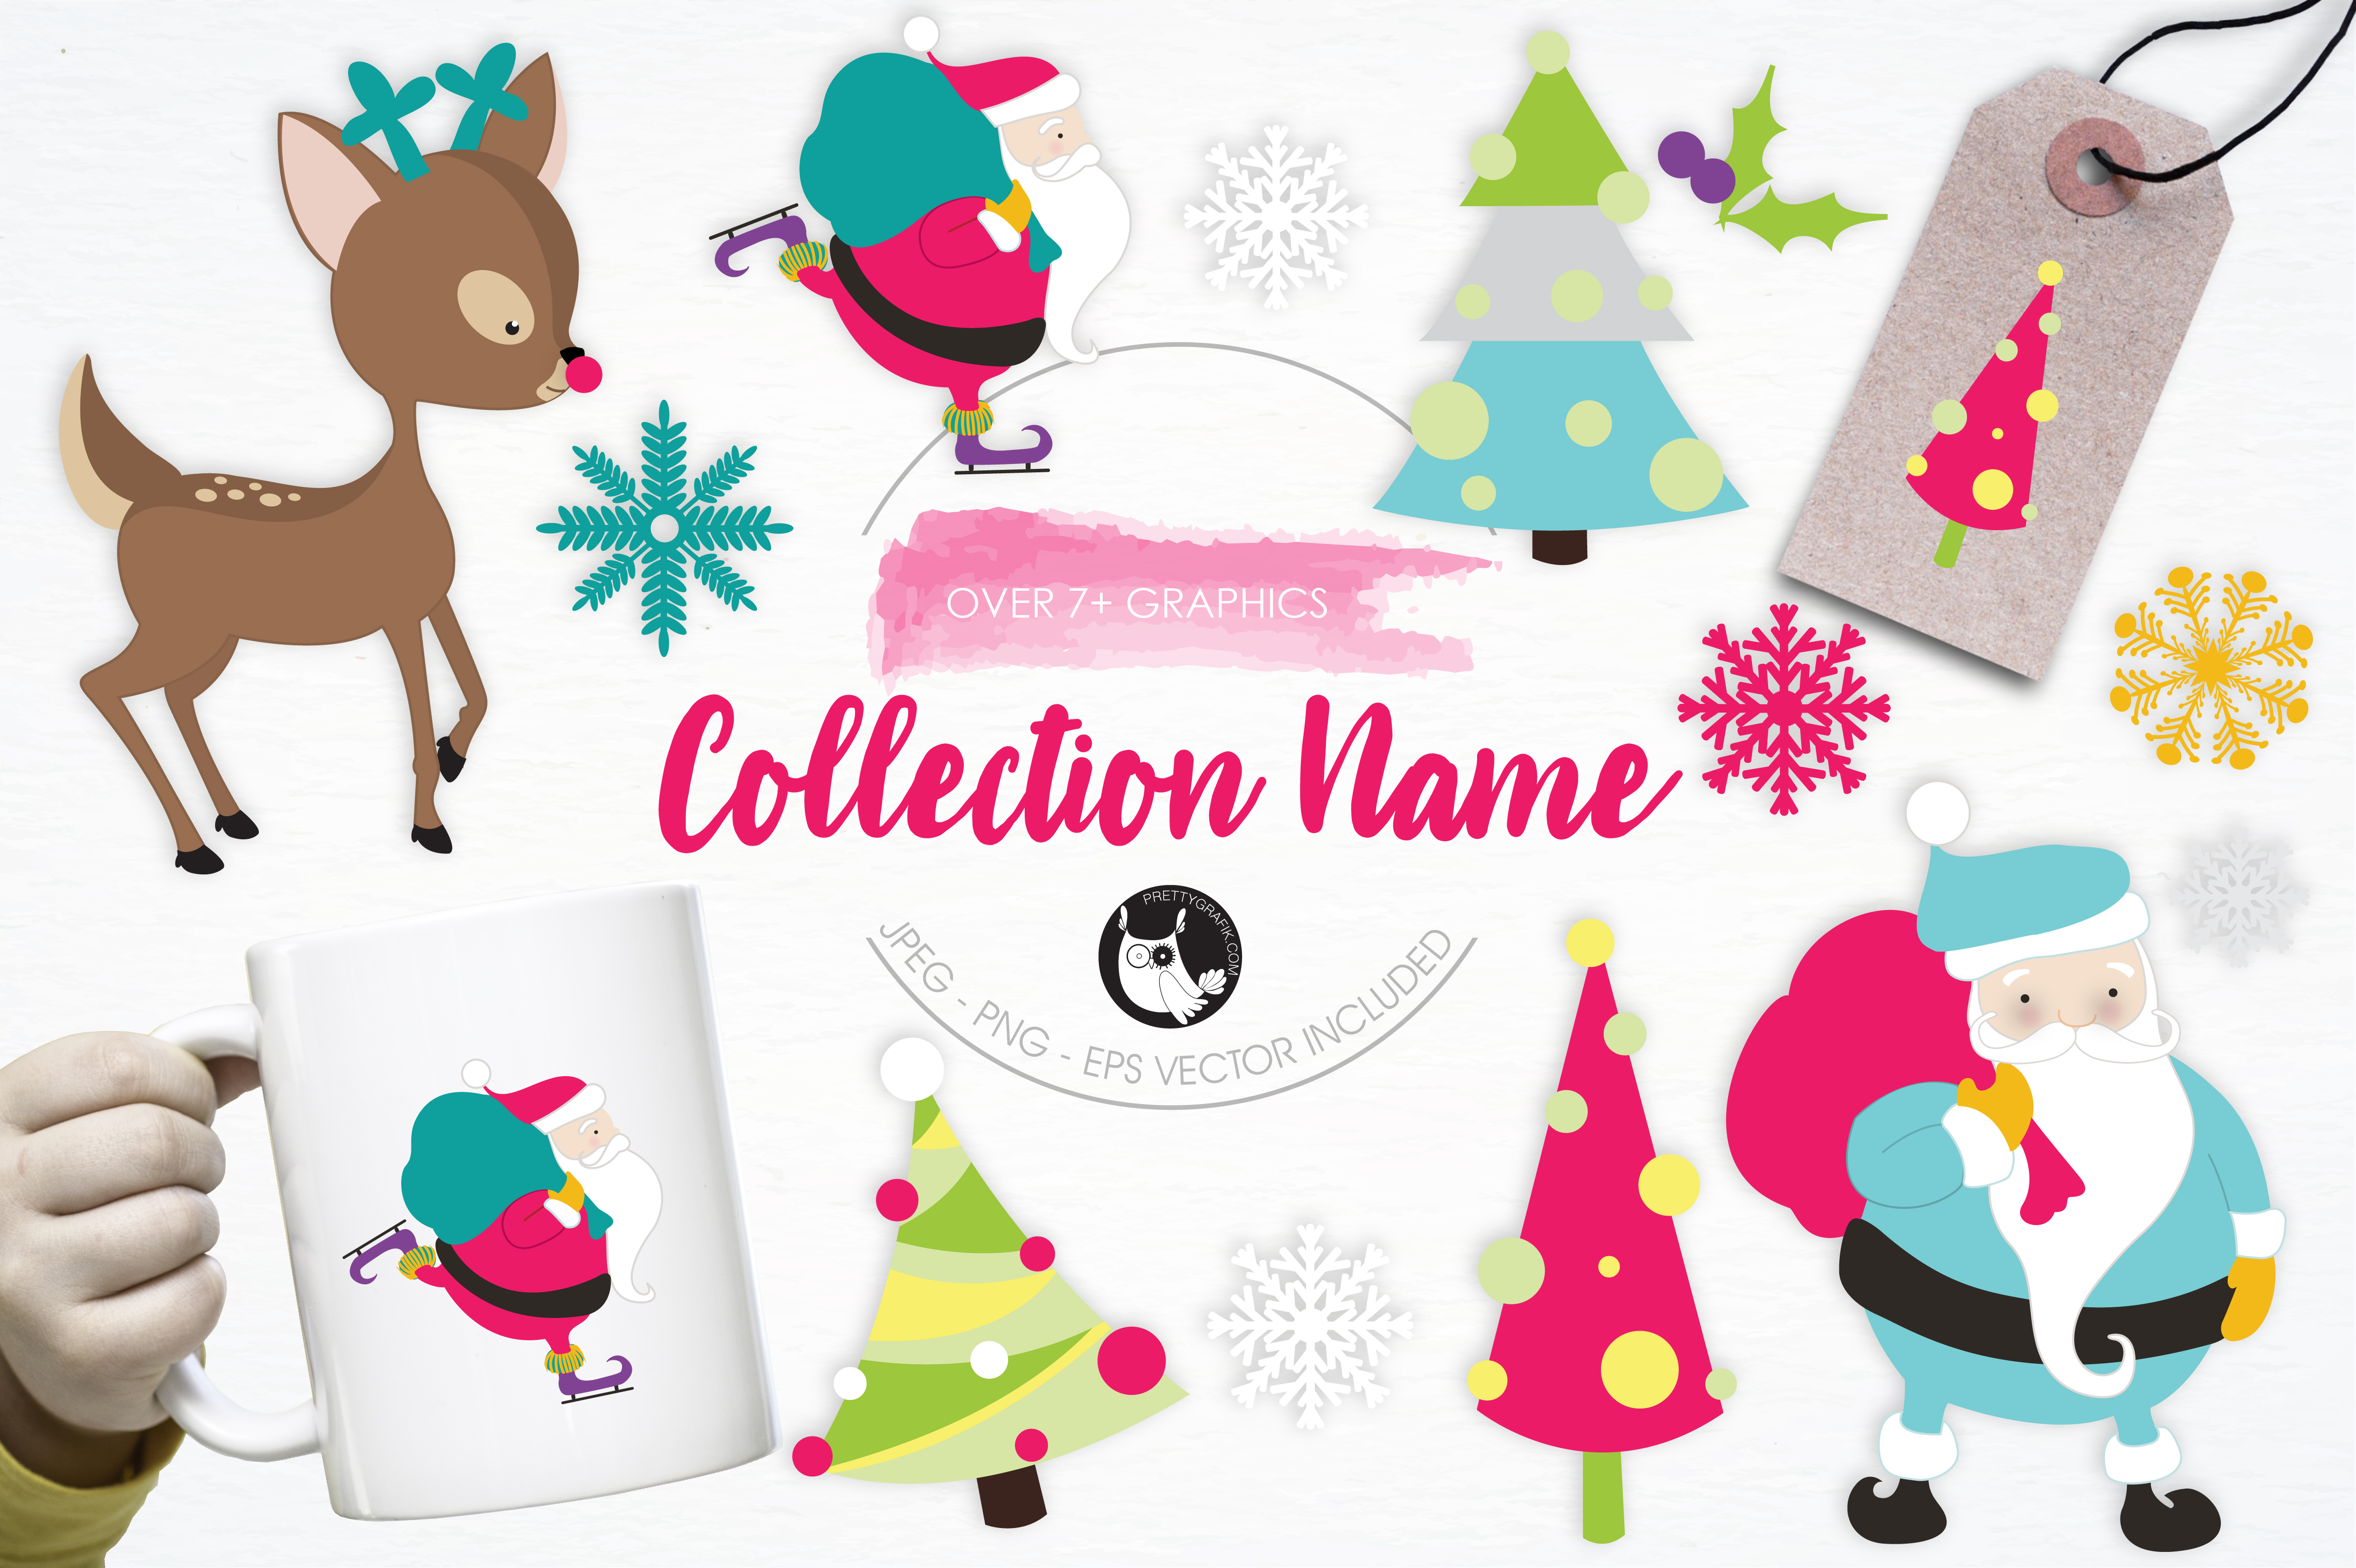 Download Free Collection Name Graphic By Prettygrafik Creative Fabrica for Cricut Explore, Silhouette and other cutting machines.